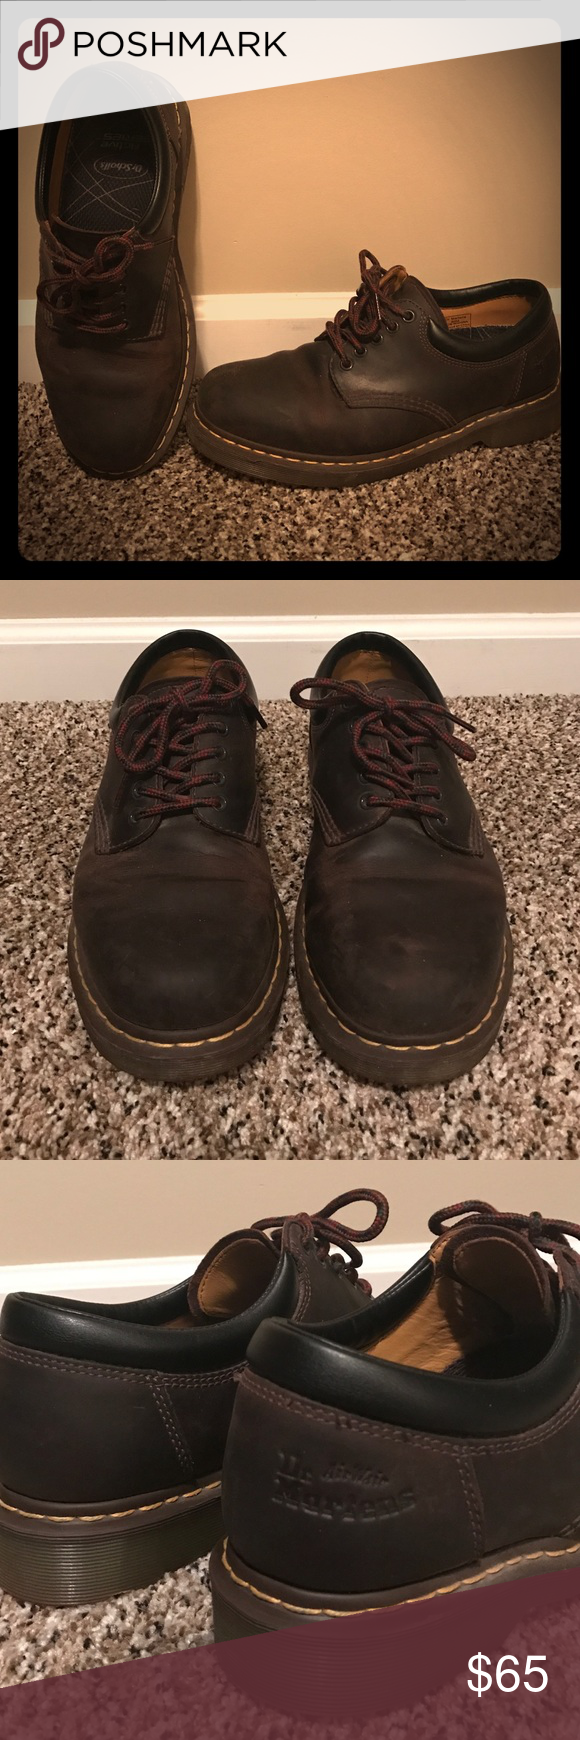 Mens Suede shoes size 10  used but in good condition